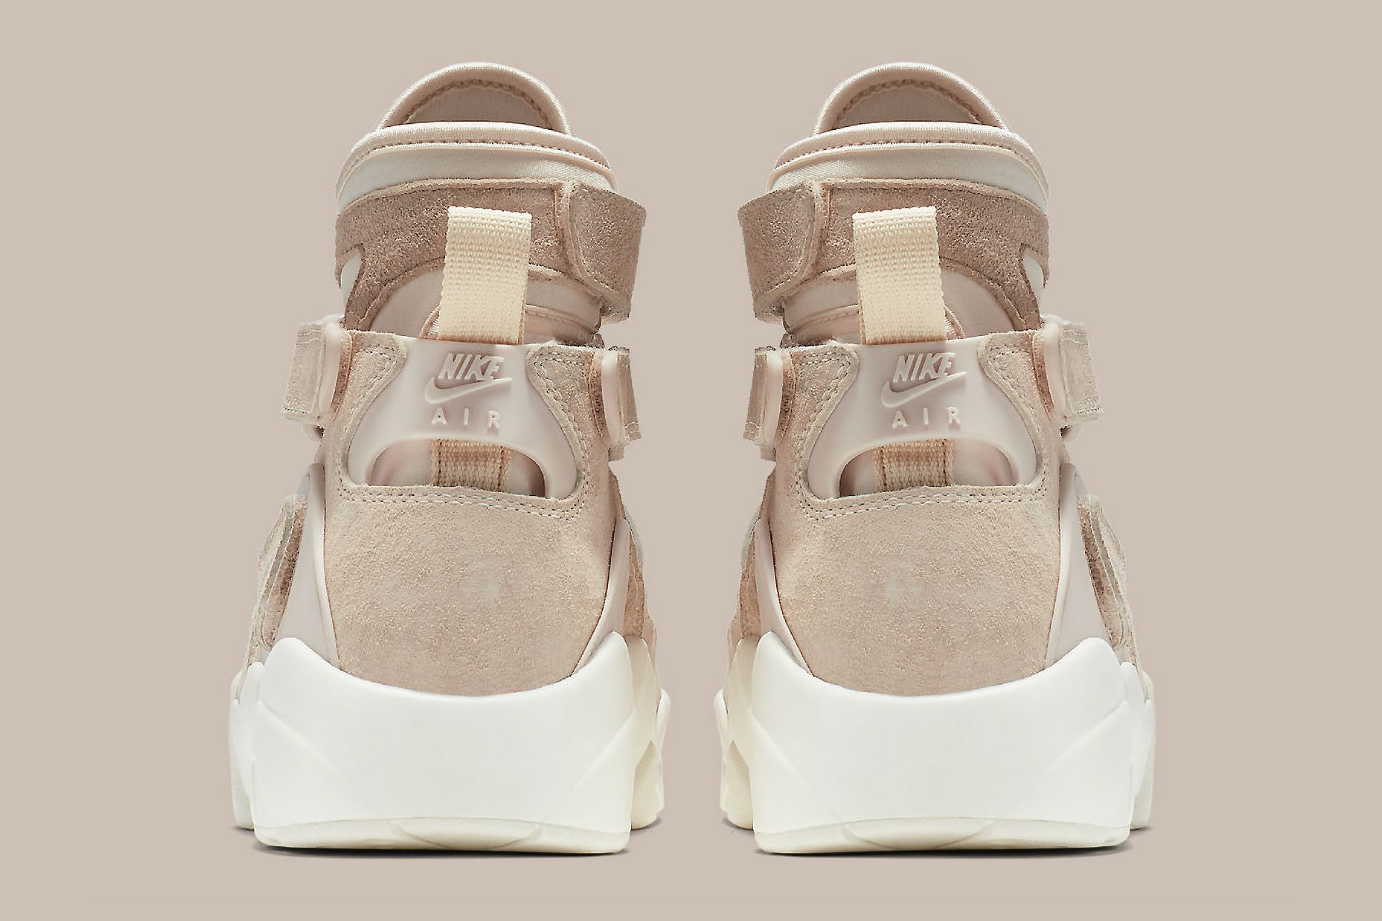 NikeLab Air Unlimited Tan Suede - TRENDS periodical